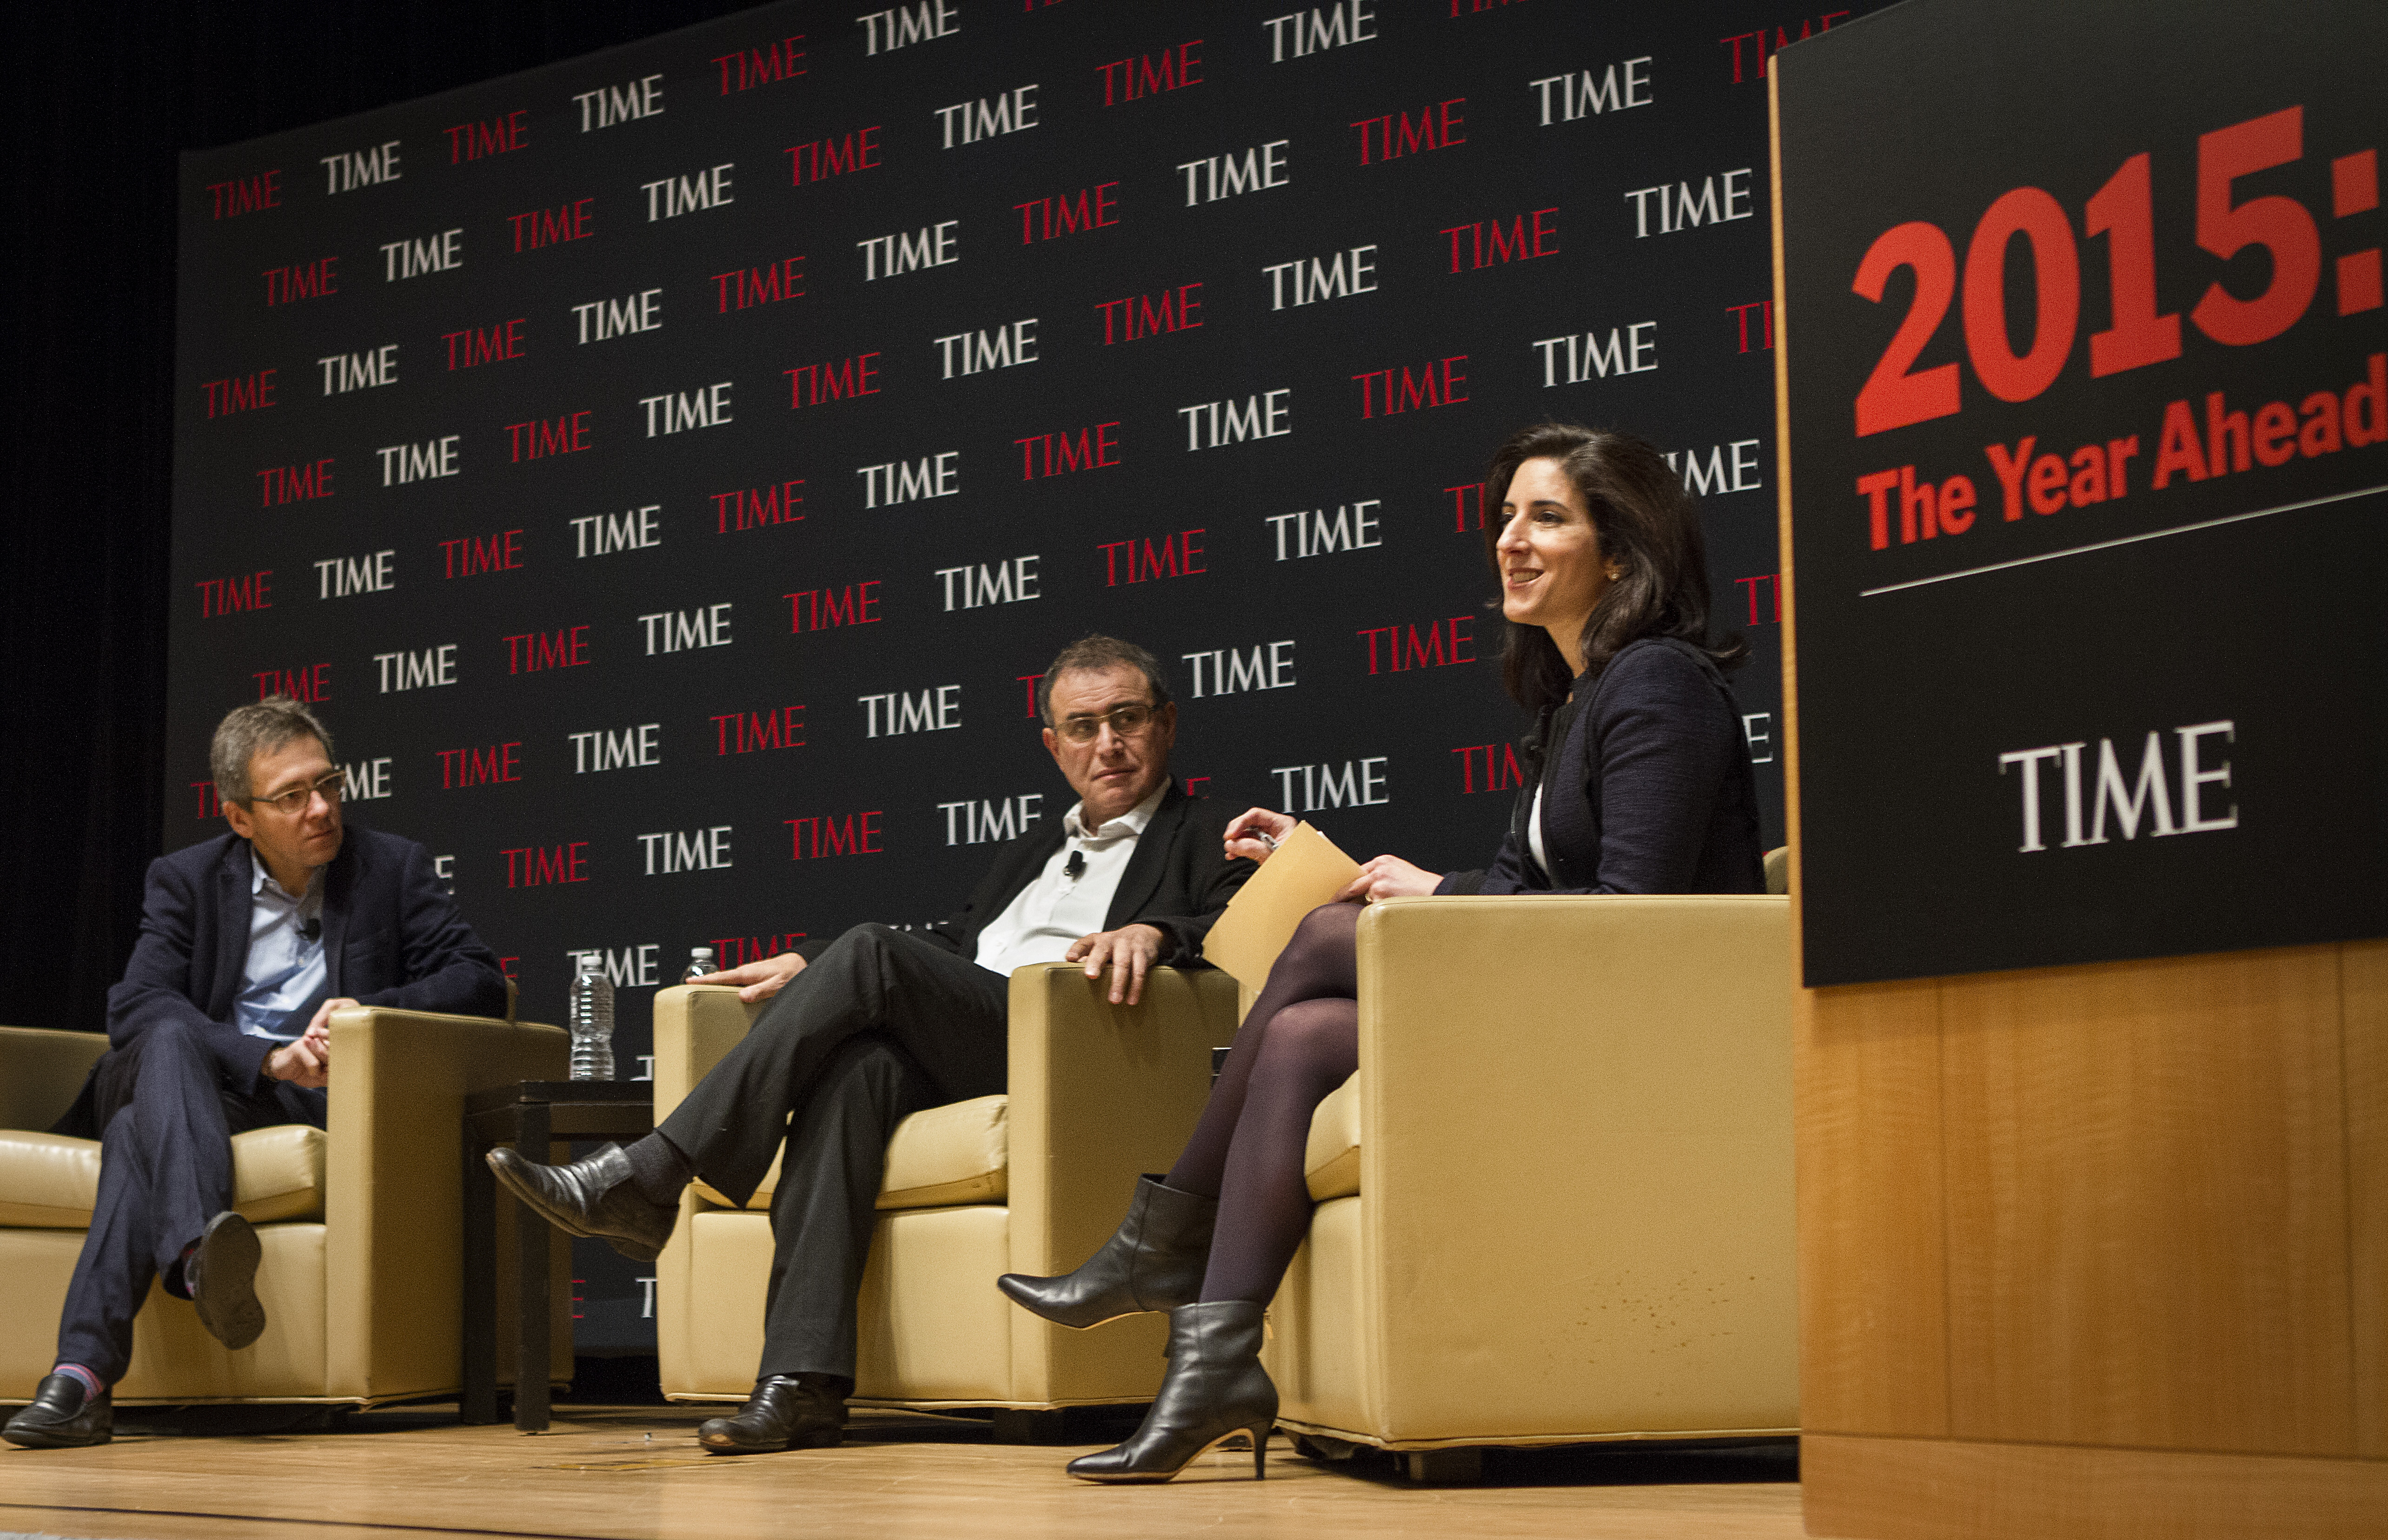 From Left: Ian Bremmer President and Founder of Eurasia Group, Nouriel Roubini, Chairman and Co-Founder of Roubini Global Economics and Rana Foroohar, Assistant Managing Editor at TIME speak on global politics and the economy at the Time & Life Building in New York City on Jan. 13, 2015.